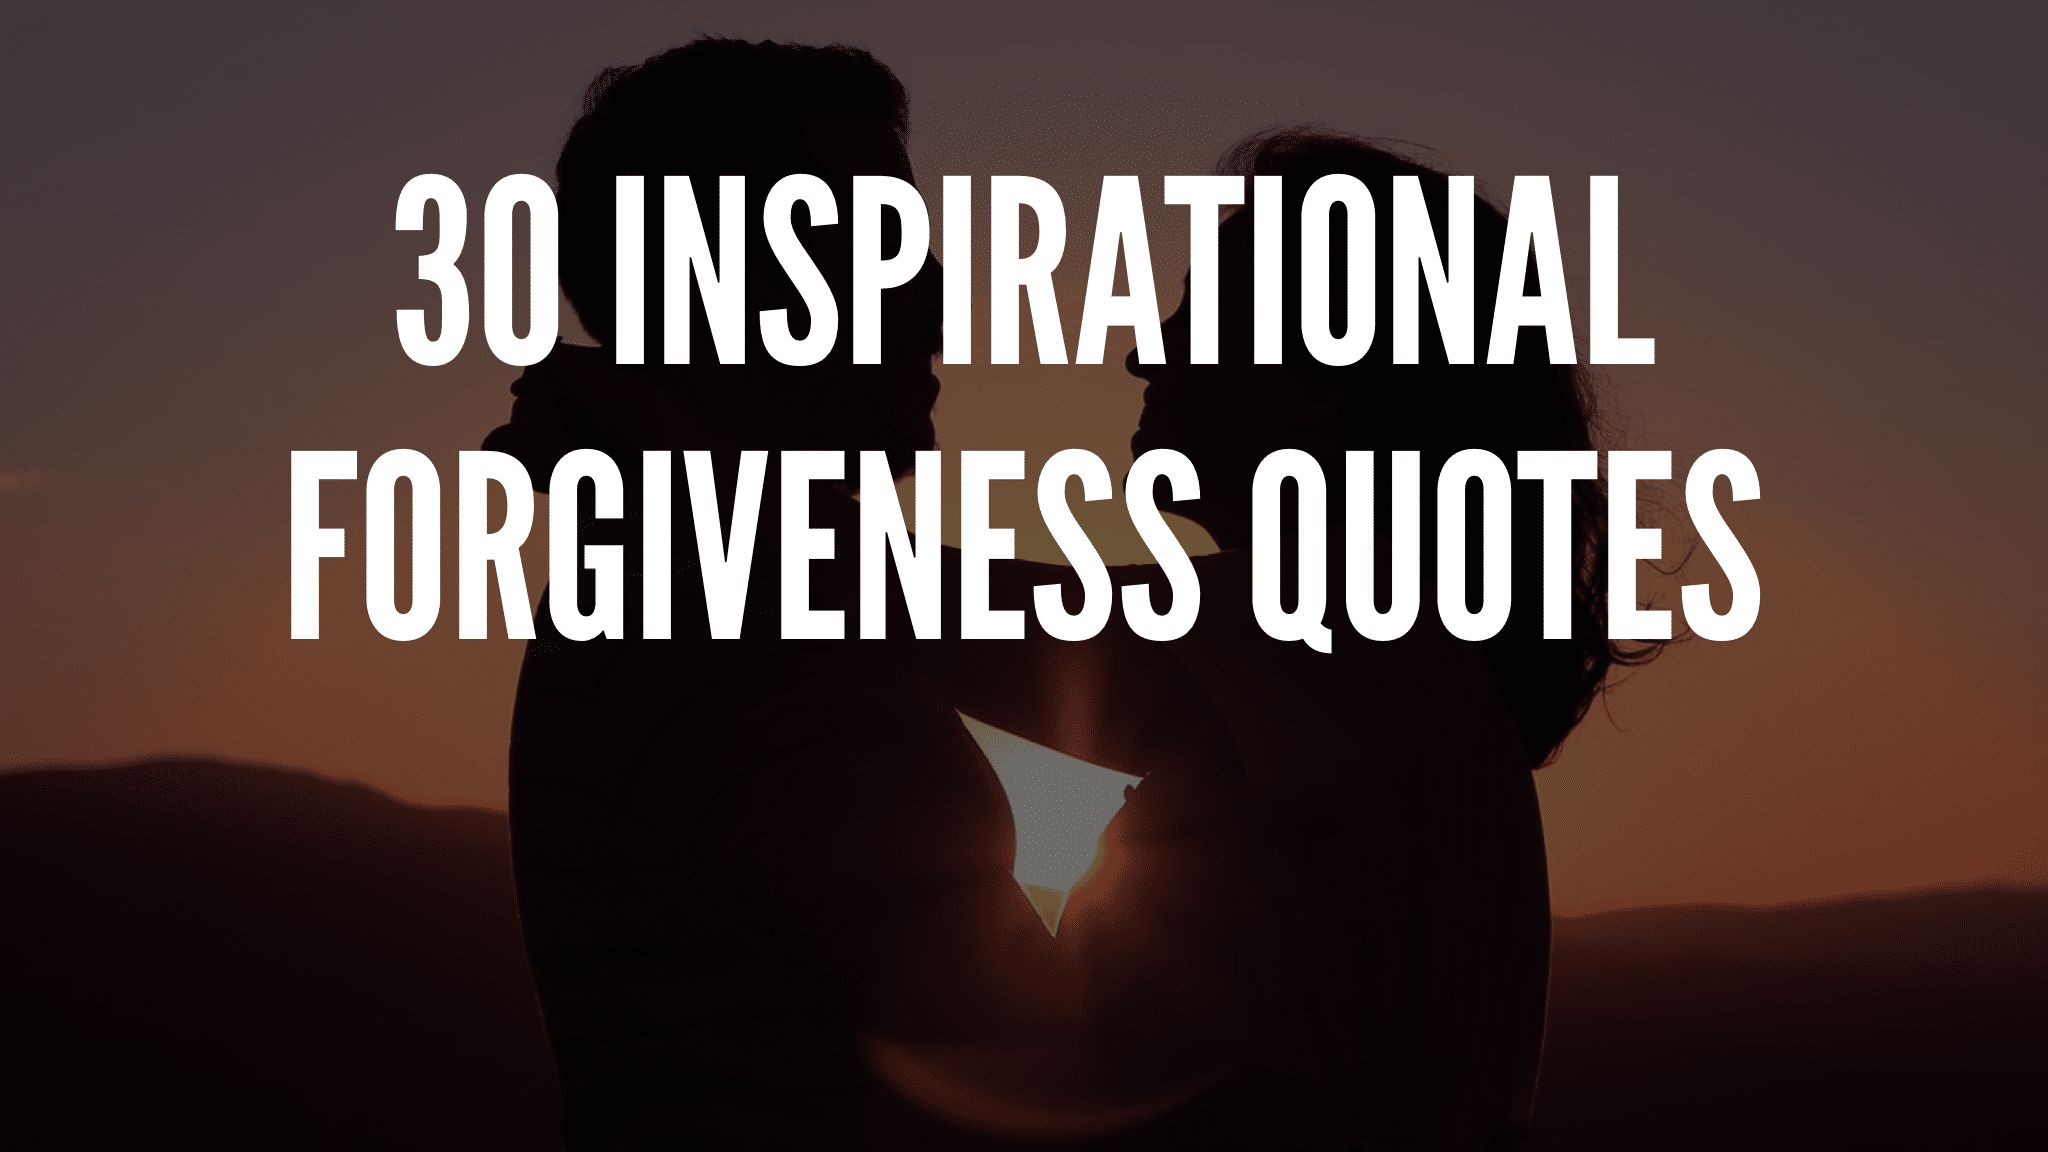 30 Inspirational Forgiveness Quotes